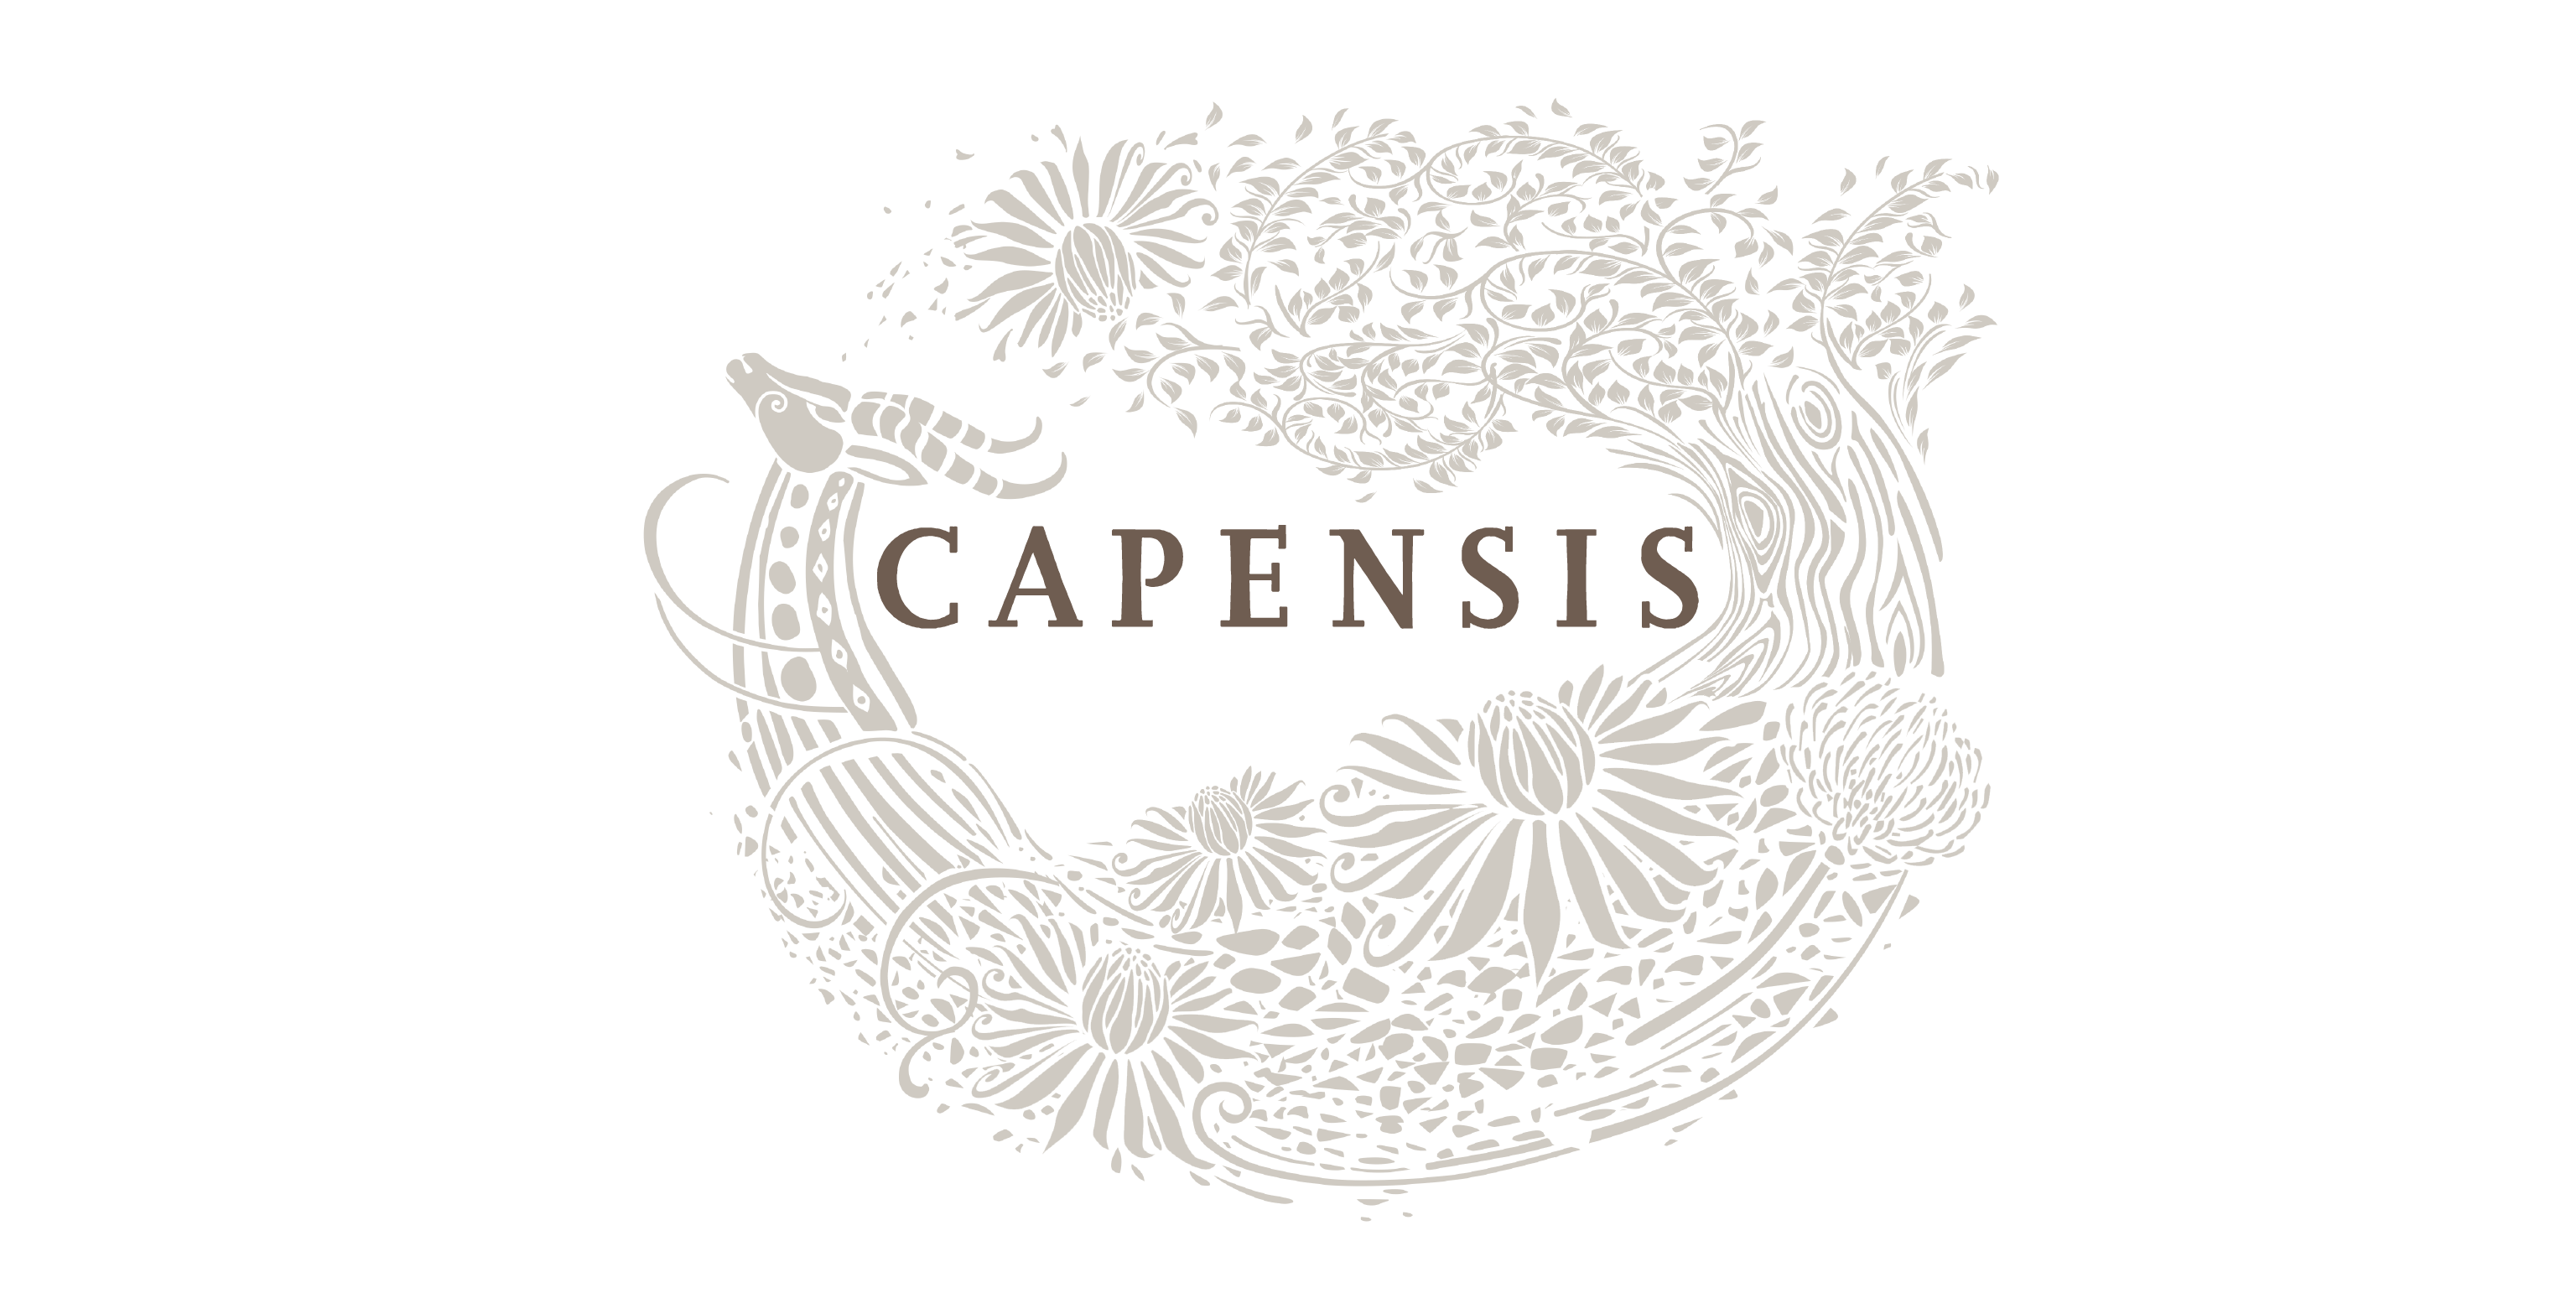 Capensis label